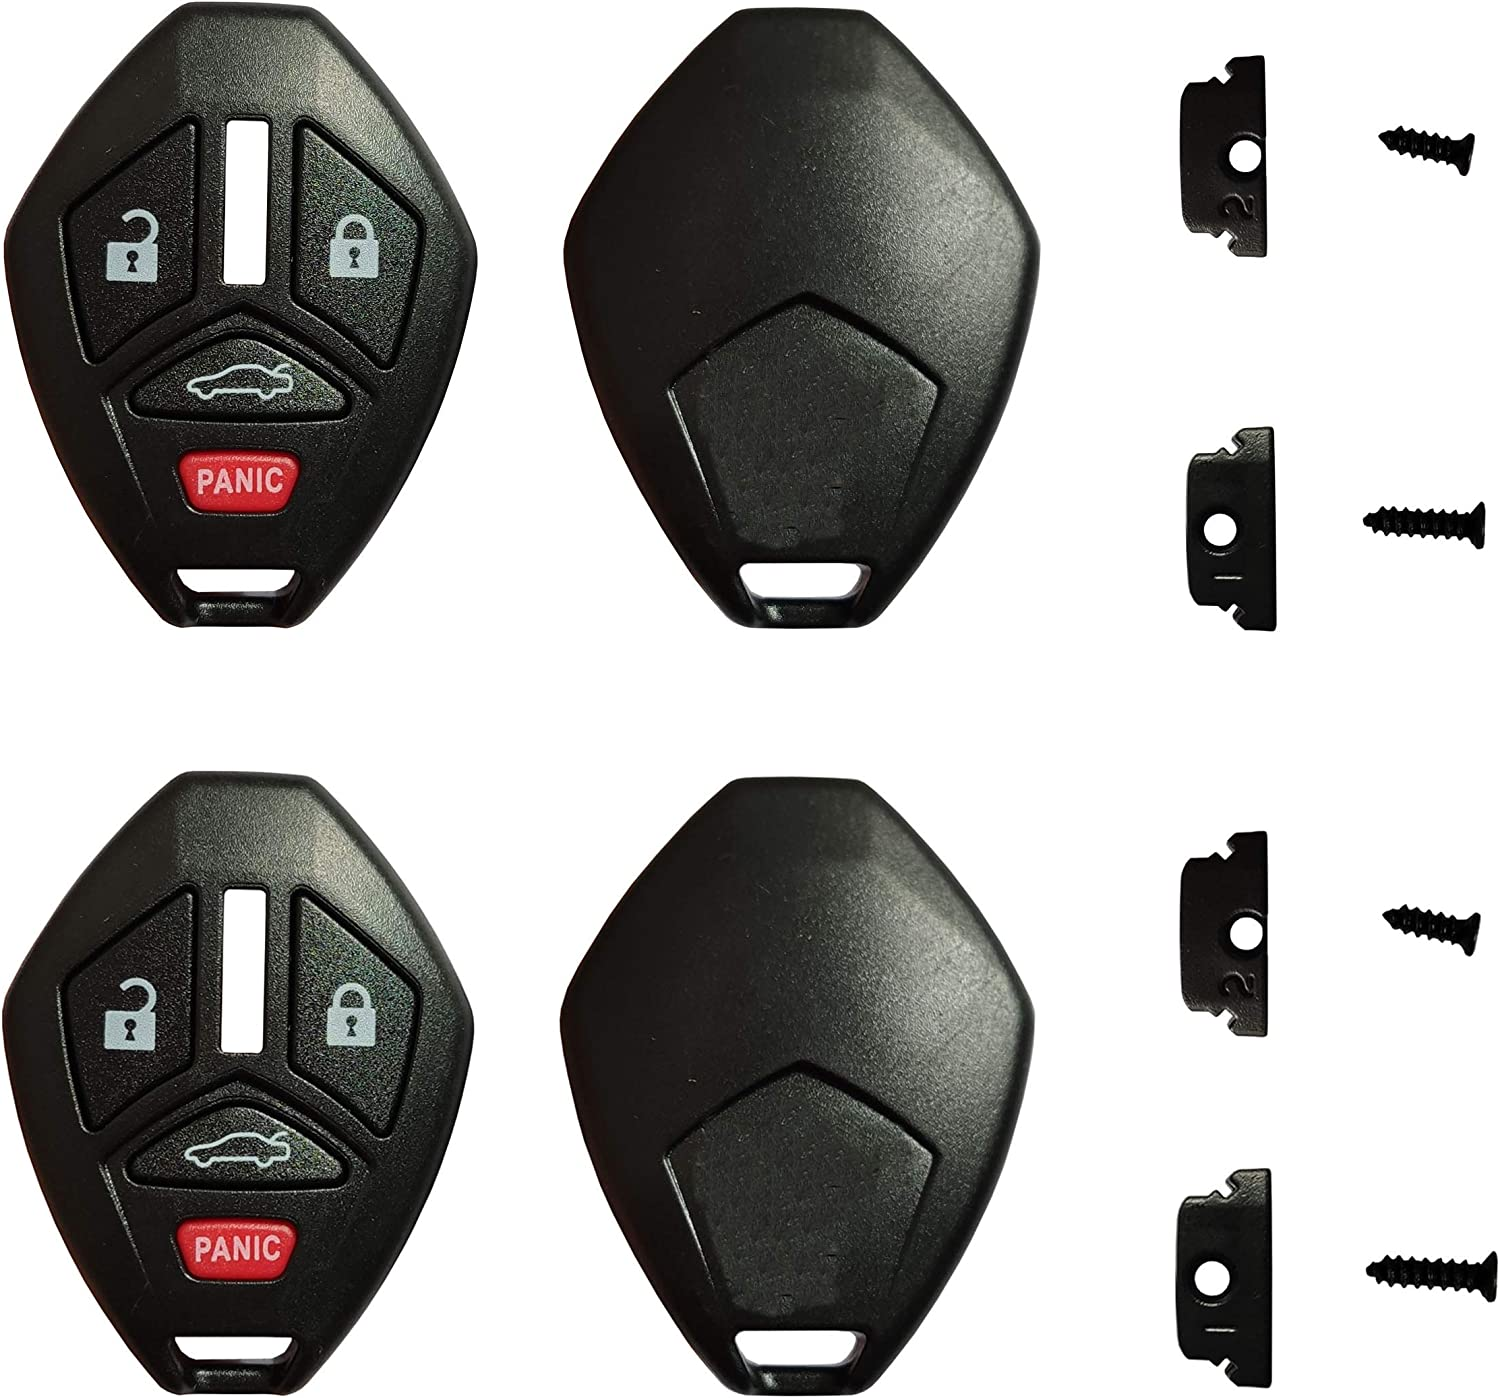 2 Replacement for 06-08 Mitsubishi Endeavor Remote Key Fob Shell Case 3b Thin